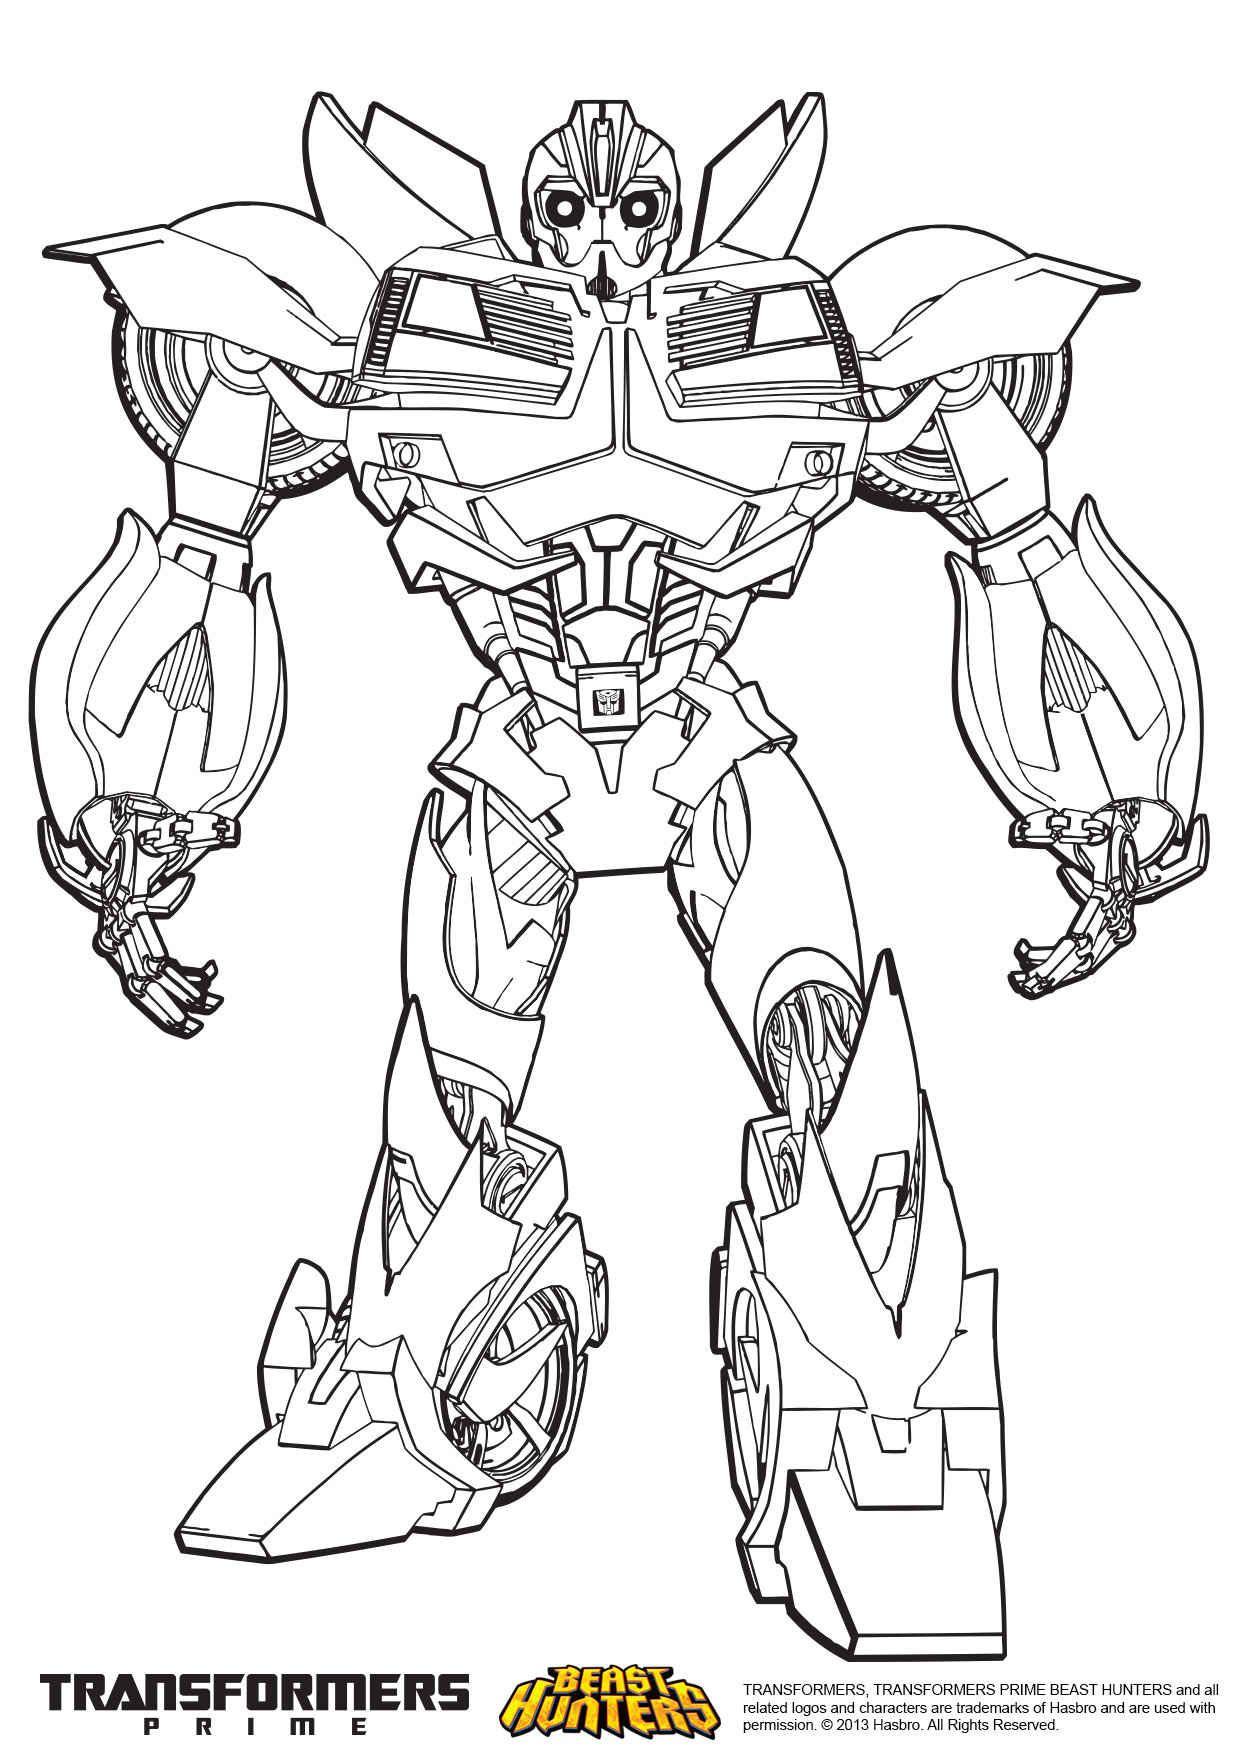 Transformers Bumblebee Coloring Pages For Kids